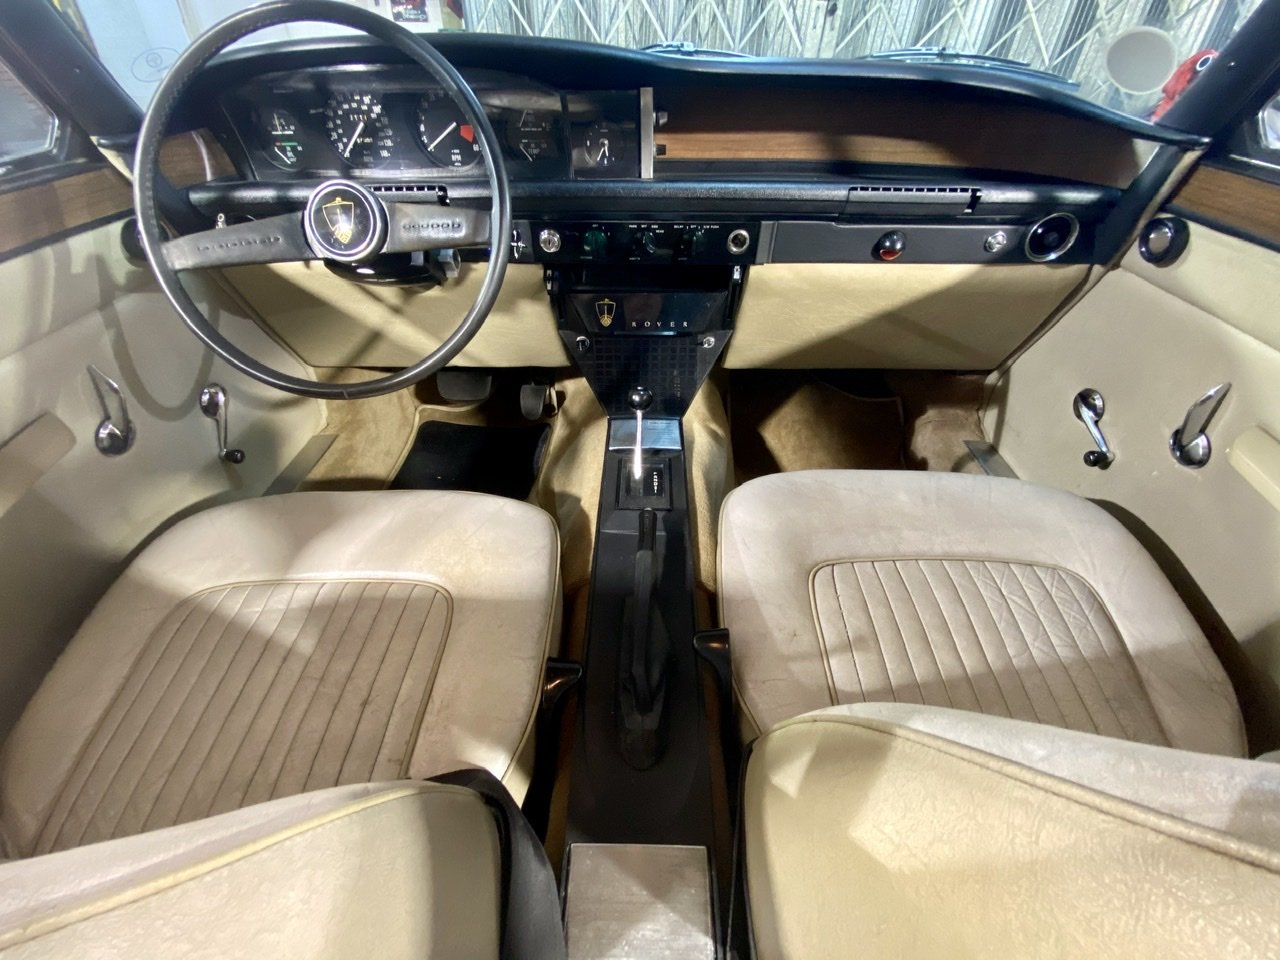 1966 Rover P6B - 3500 Prototype For Sale (picture 3 of 6)